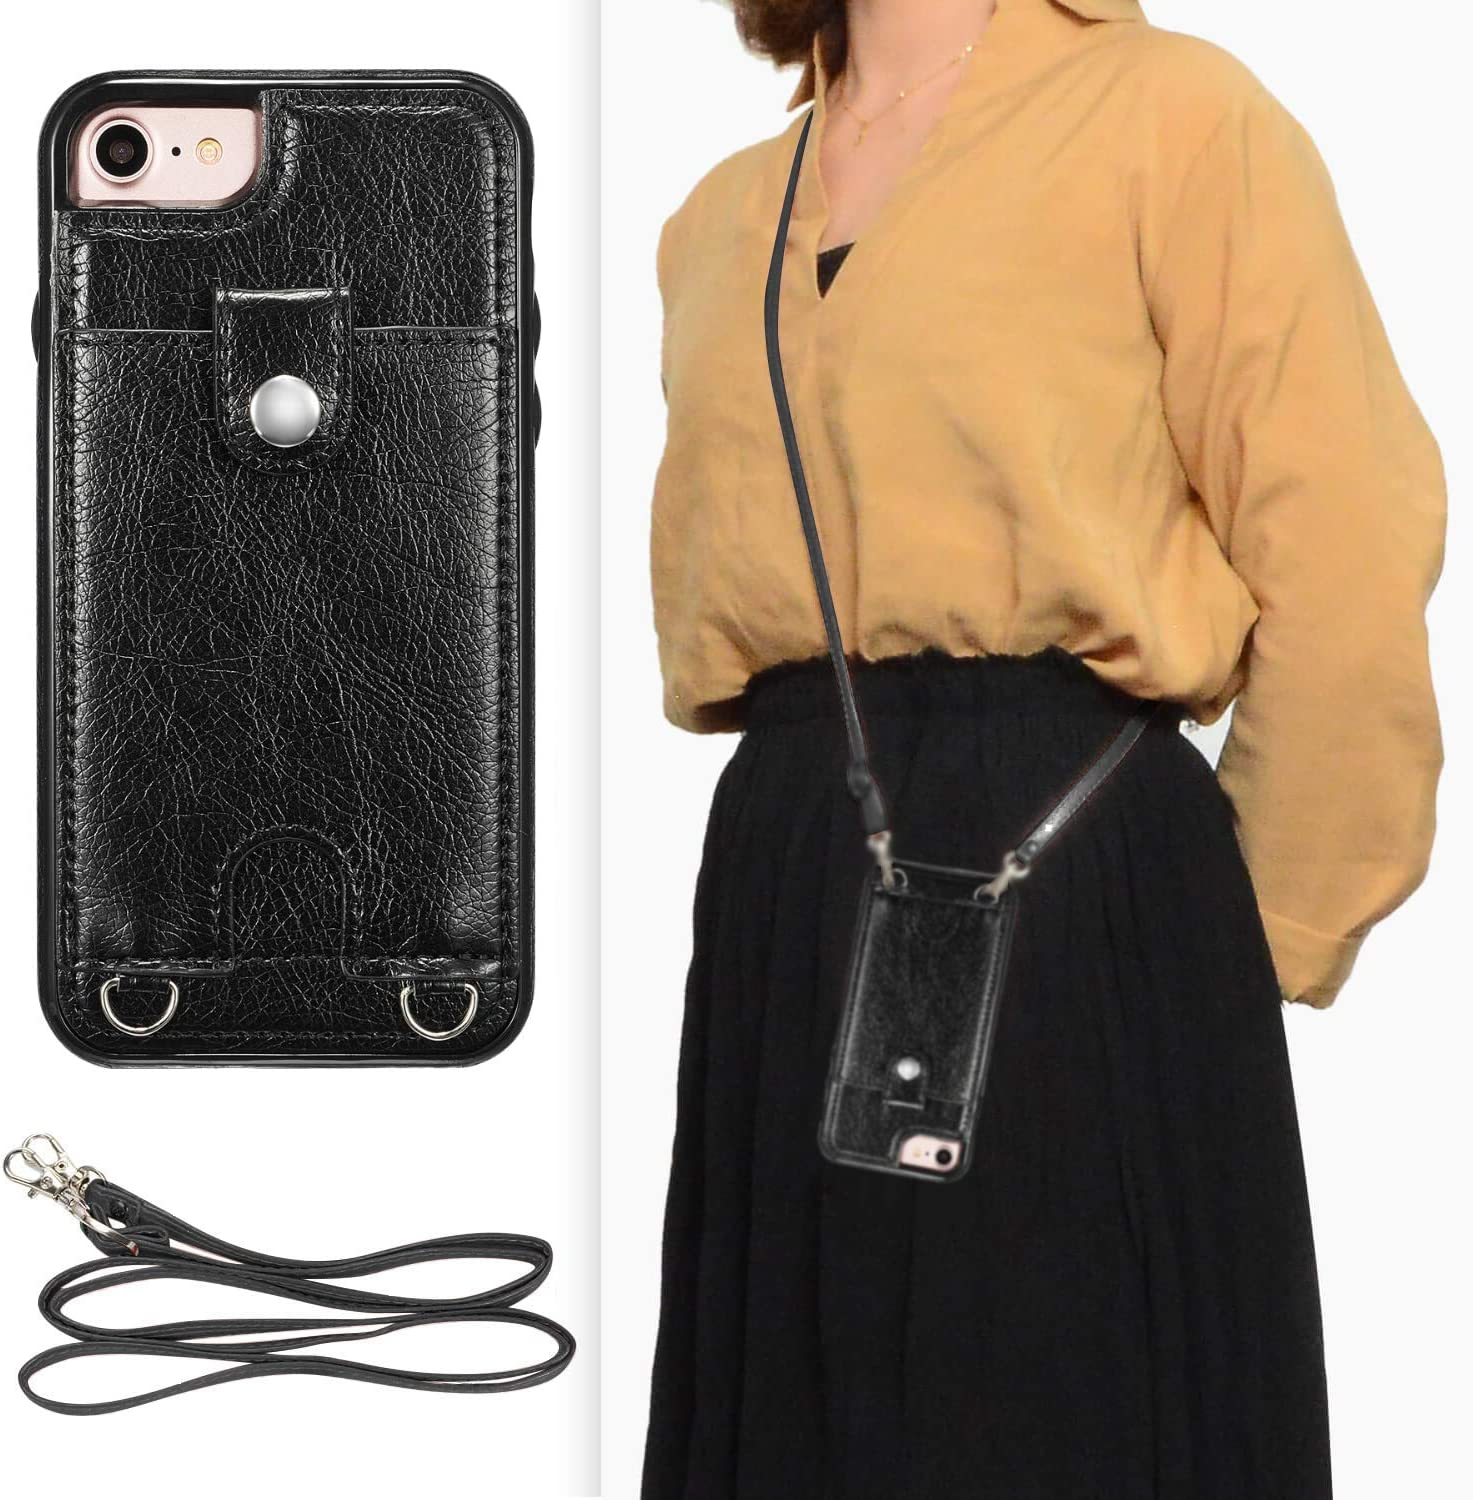 DEFBSC iPhone 7 Plus iPhone 8 Plus Crossbody Wallet Case,Premium Leather Case with Detachable Adjustable Crossbody Strap and Credit Card Slots for iPhone 7 Plus/8 Plus 5.5 Inch-Black